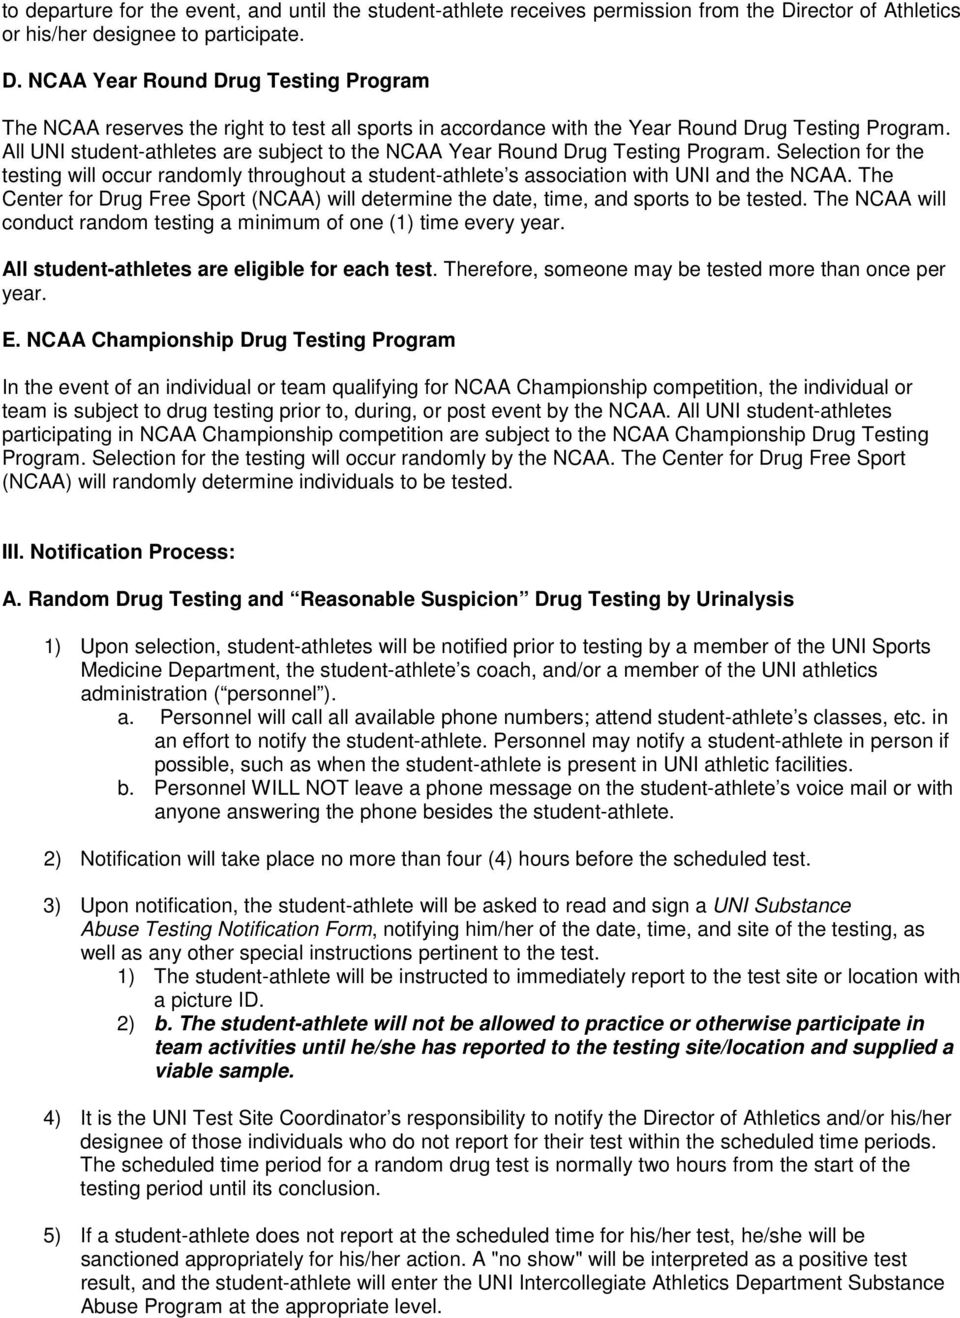 All UNI student-athletes are subject to the NCAA Year Round Drug Testing Program. Selection for the testing will occur randomly throughout a student-athlete s association with UNI and the NCAA.